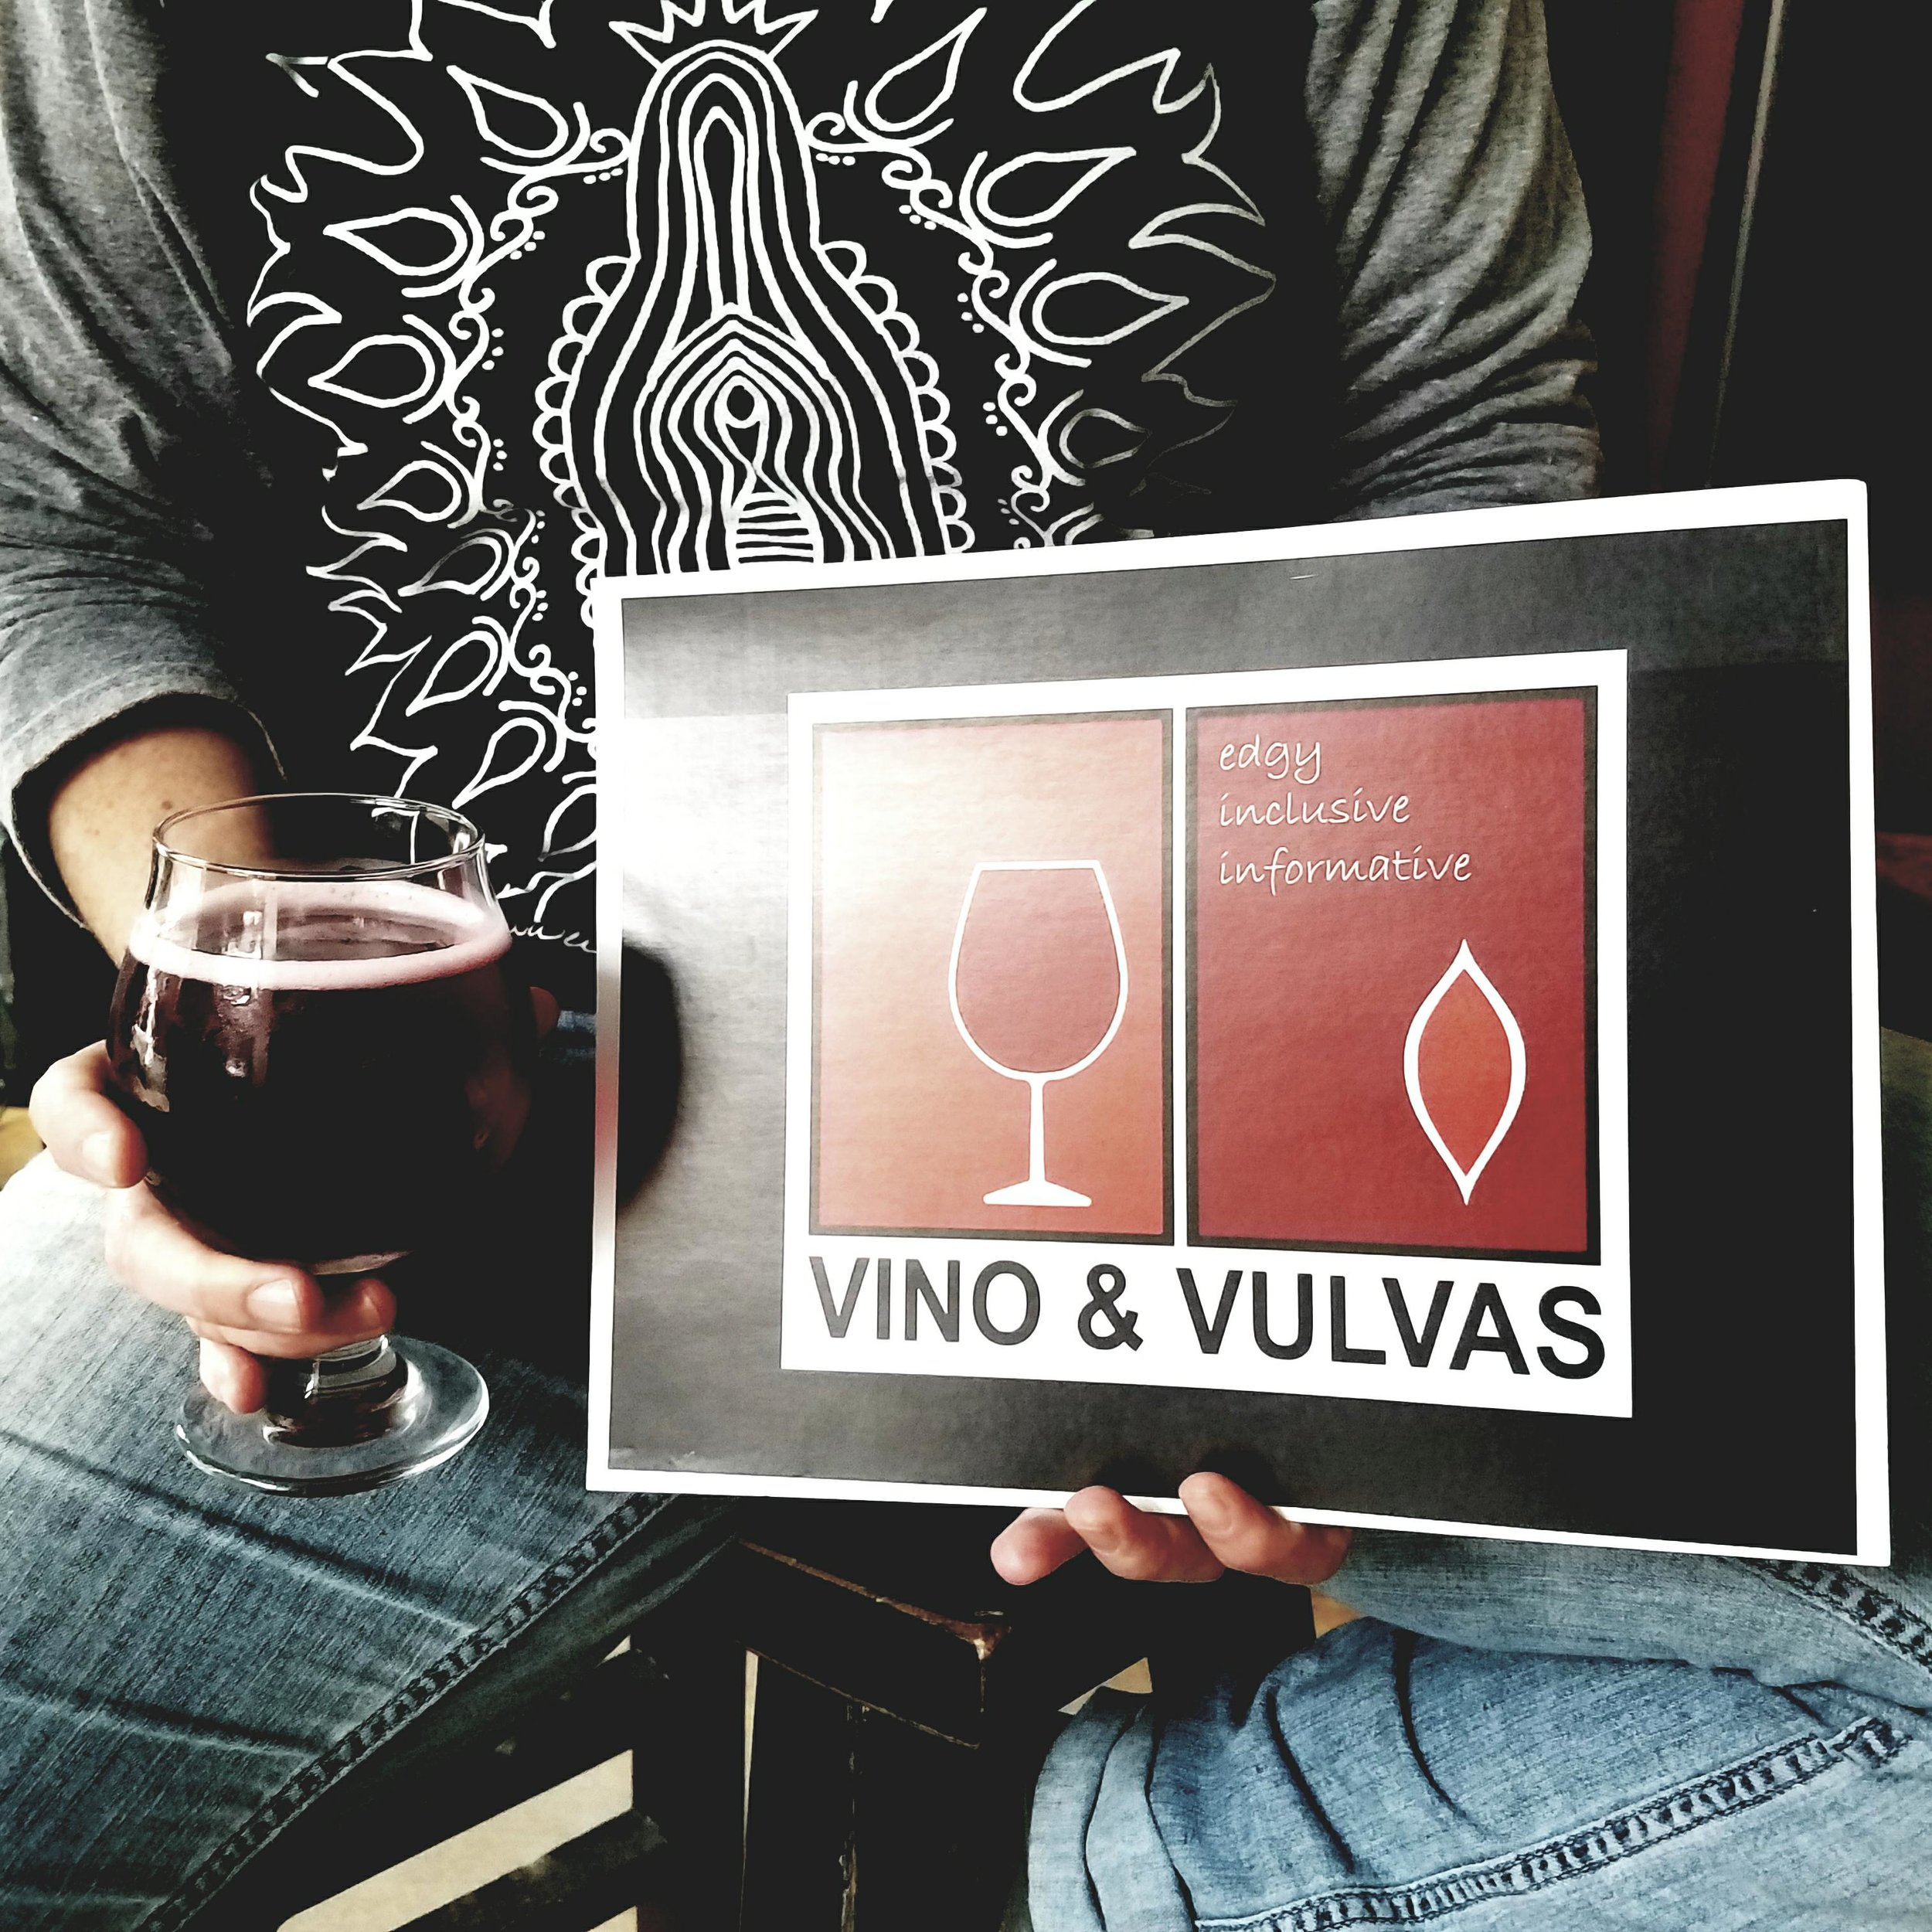 Image of person in jeans and vulva art t-shirt sitting on a stool holding a Vino & Vulvas sign along with a glass of dark cider.